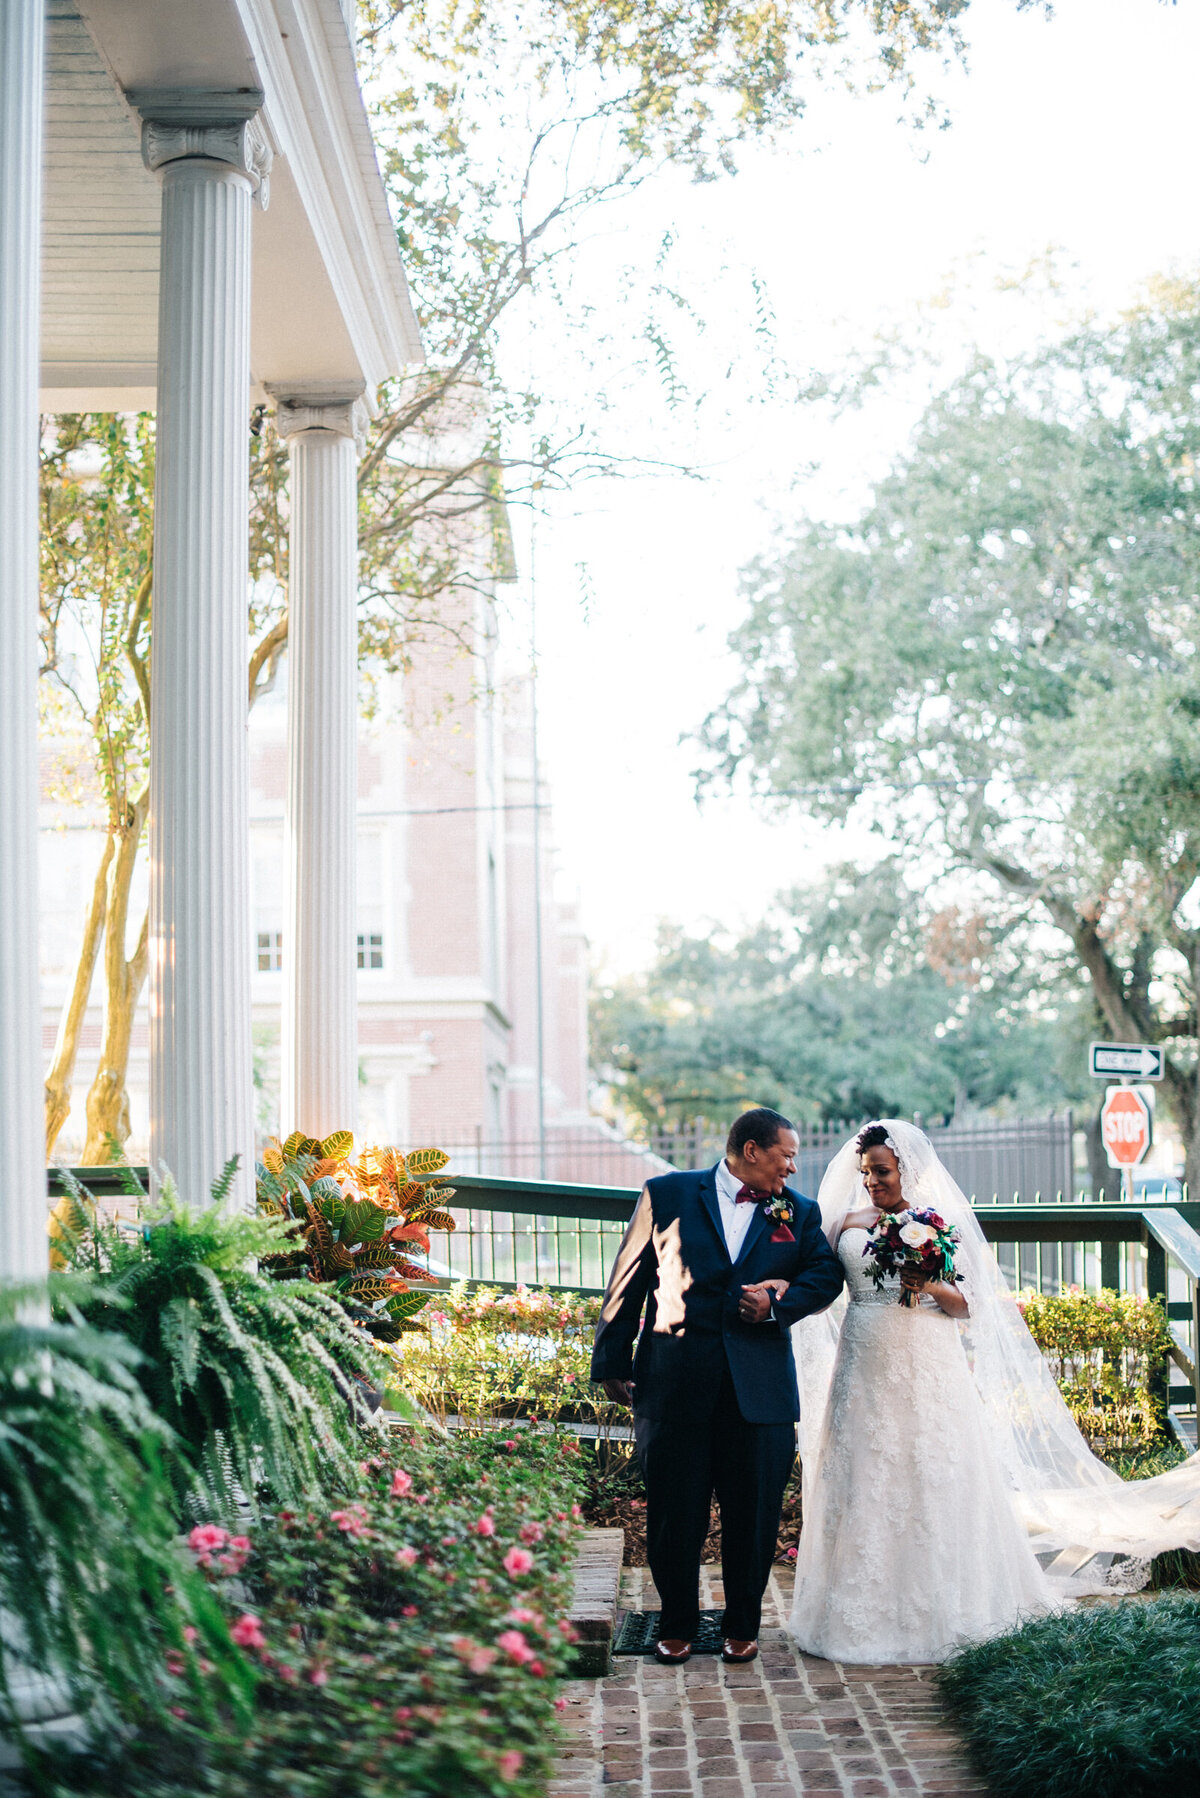 CourtneyDanny-New-Orleans-Wedding-313